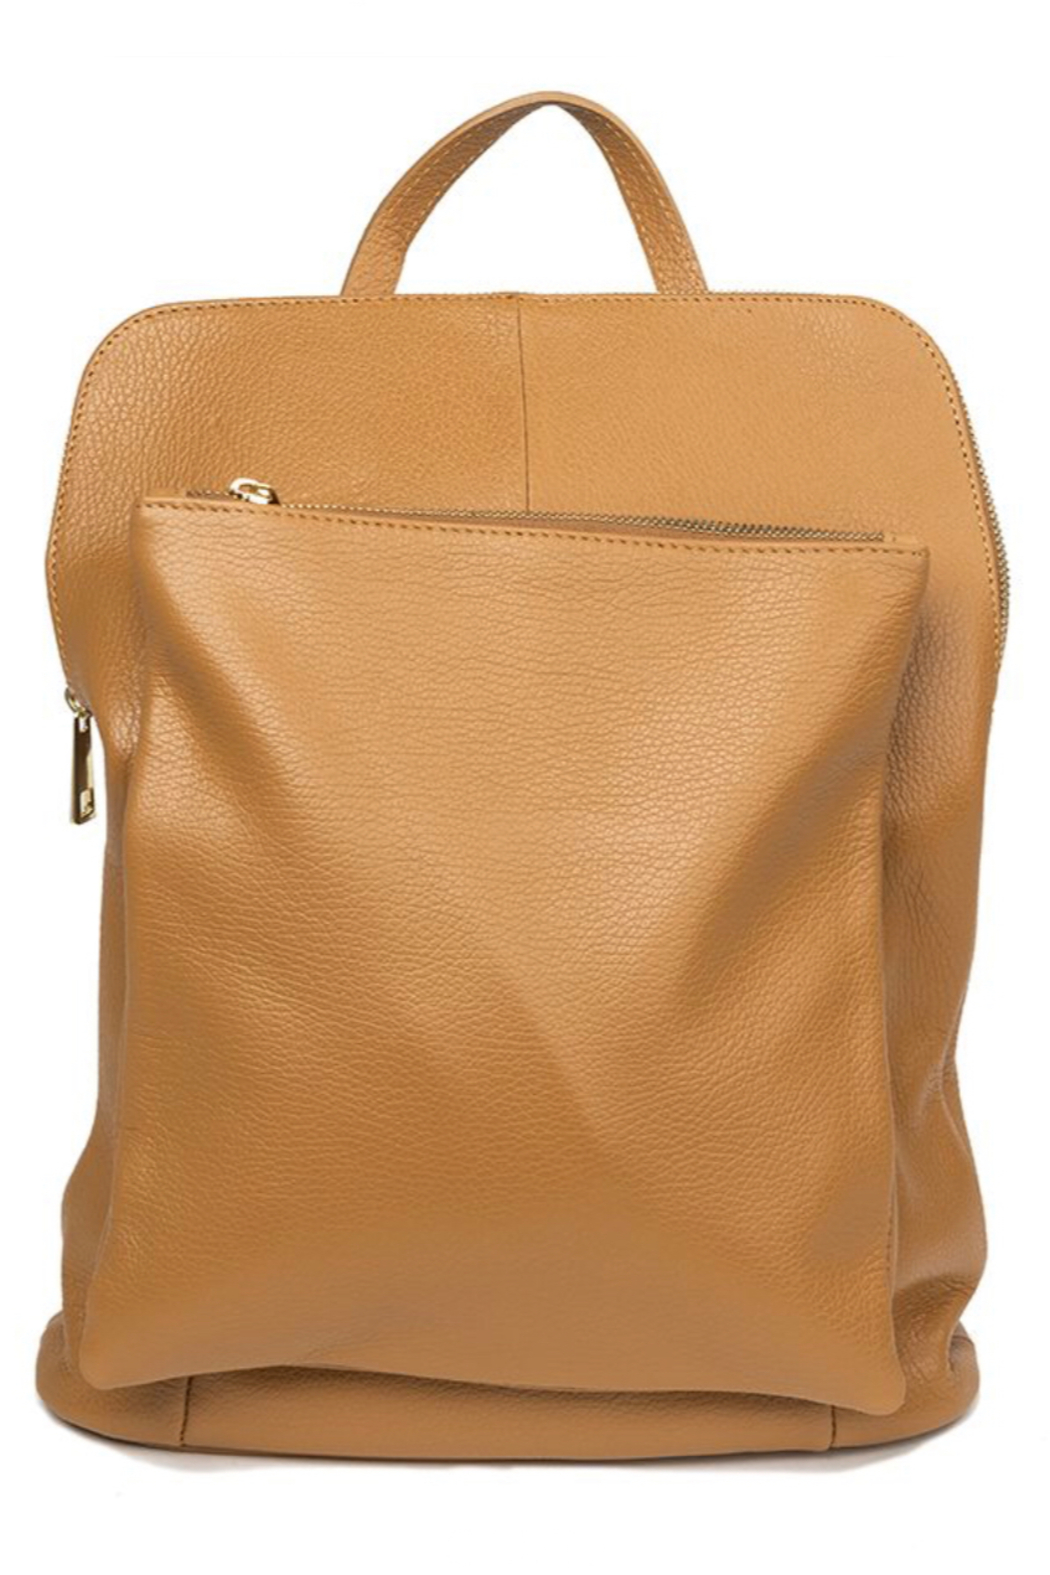 German Fuentes  Leather Zipper Backpack - Front Full Image